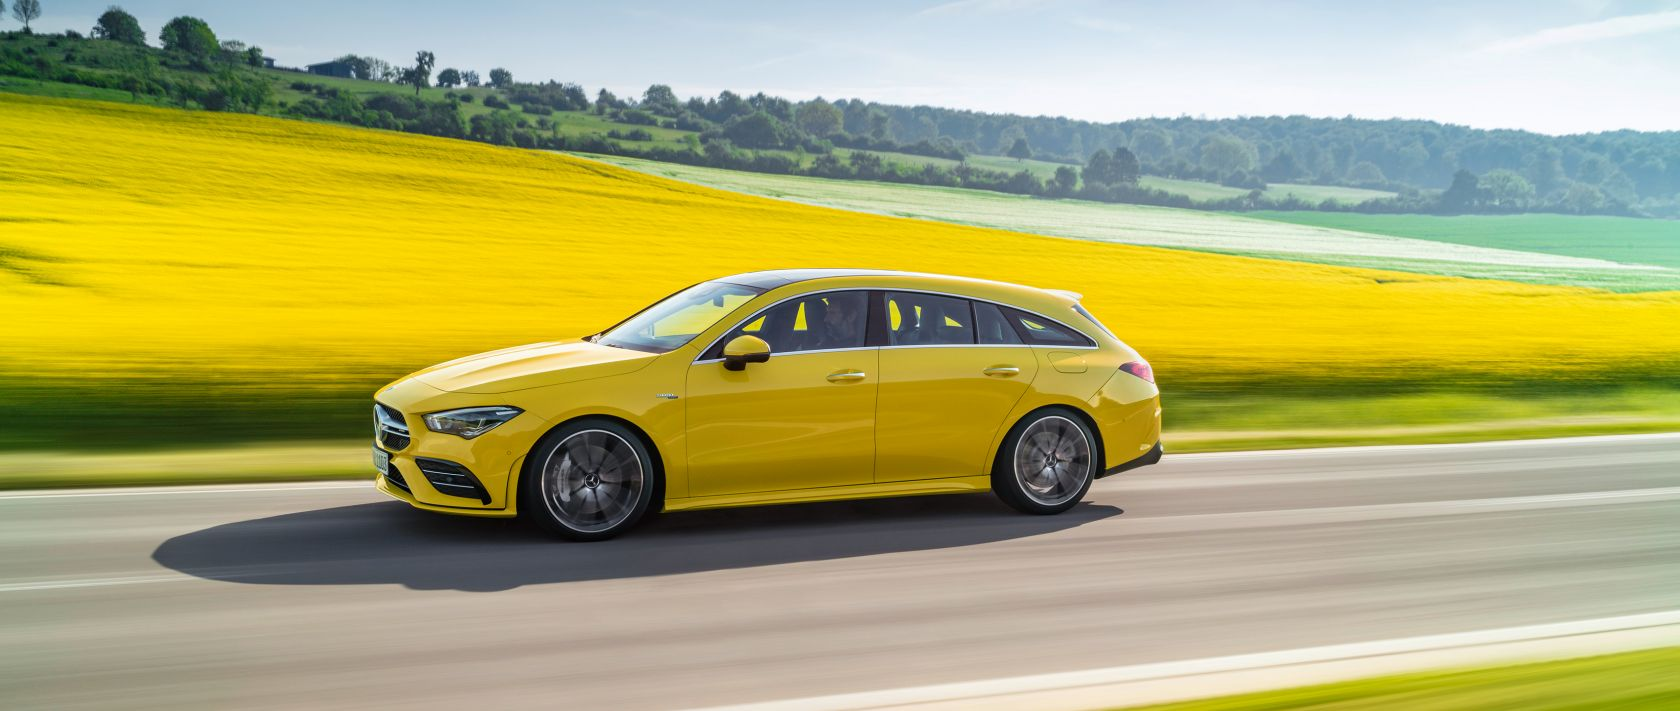 The new 2019 Mercedes-AMG CLA 35 4MATIC Shooting Brake (X 118) in sun yellow passes a rape field.